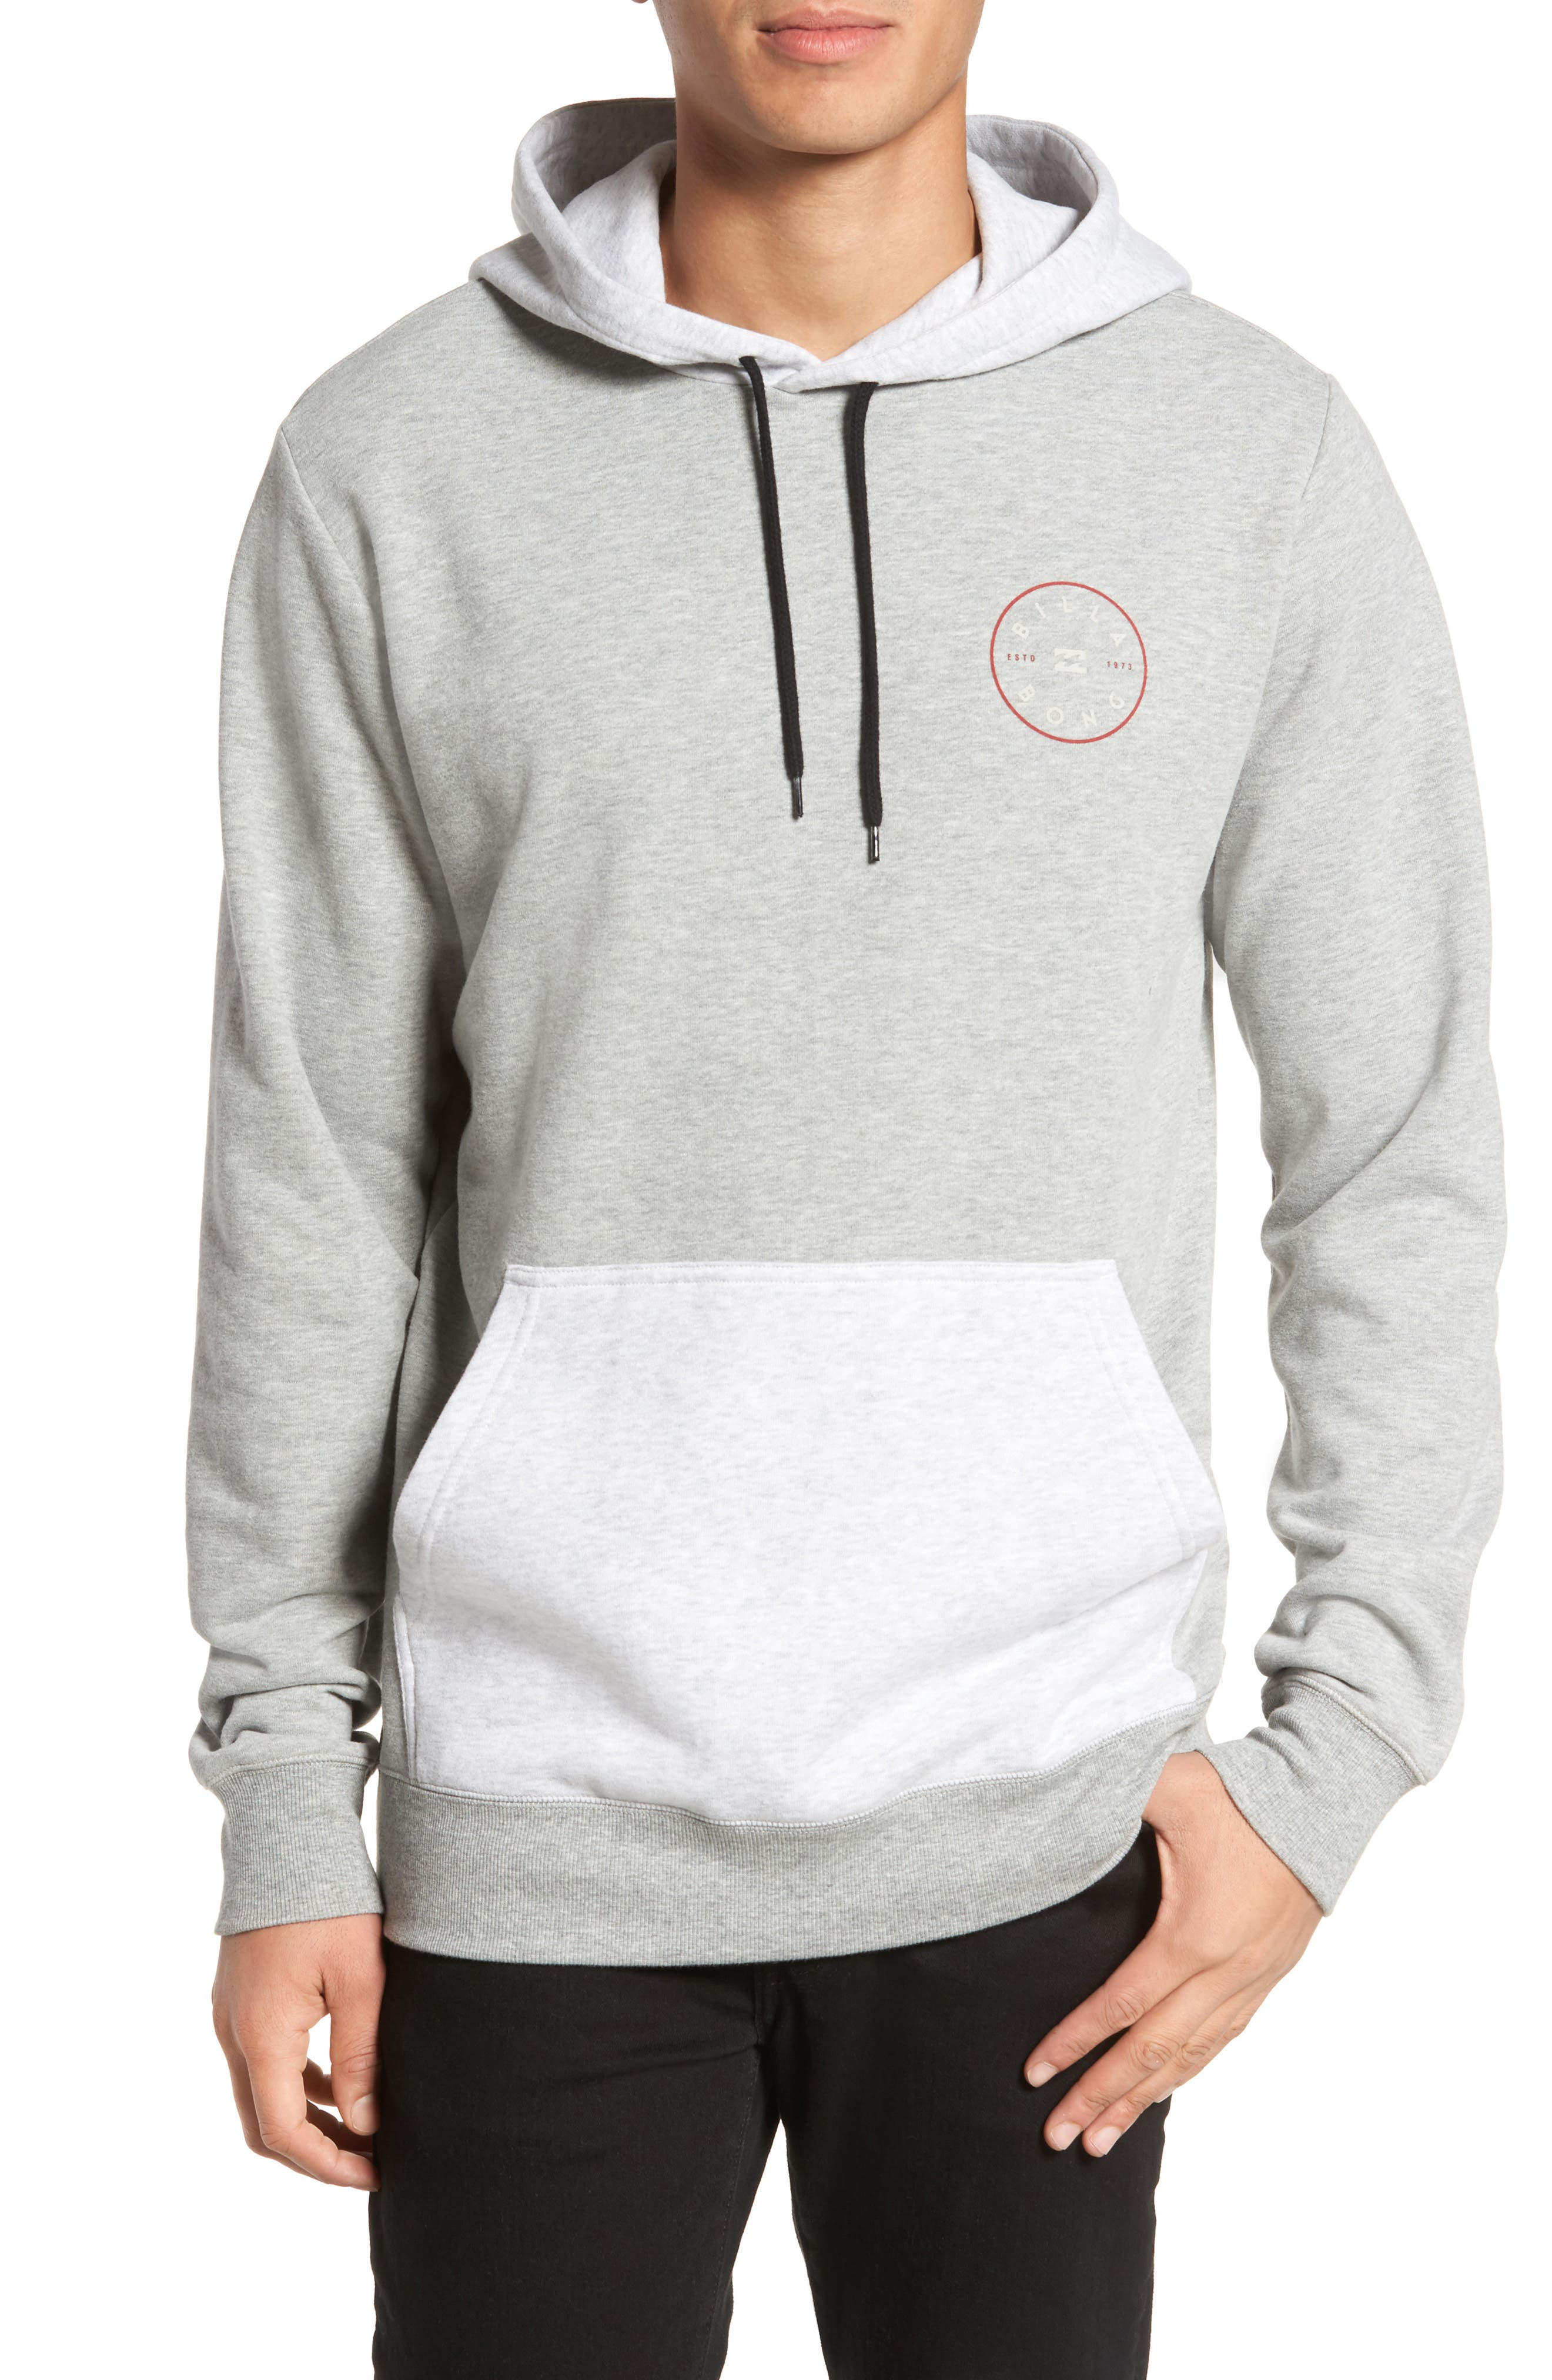 Piston Hoodie,                             Main thumbnail 1, color,                             Grey Heather